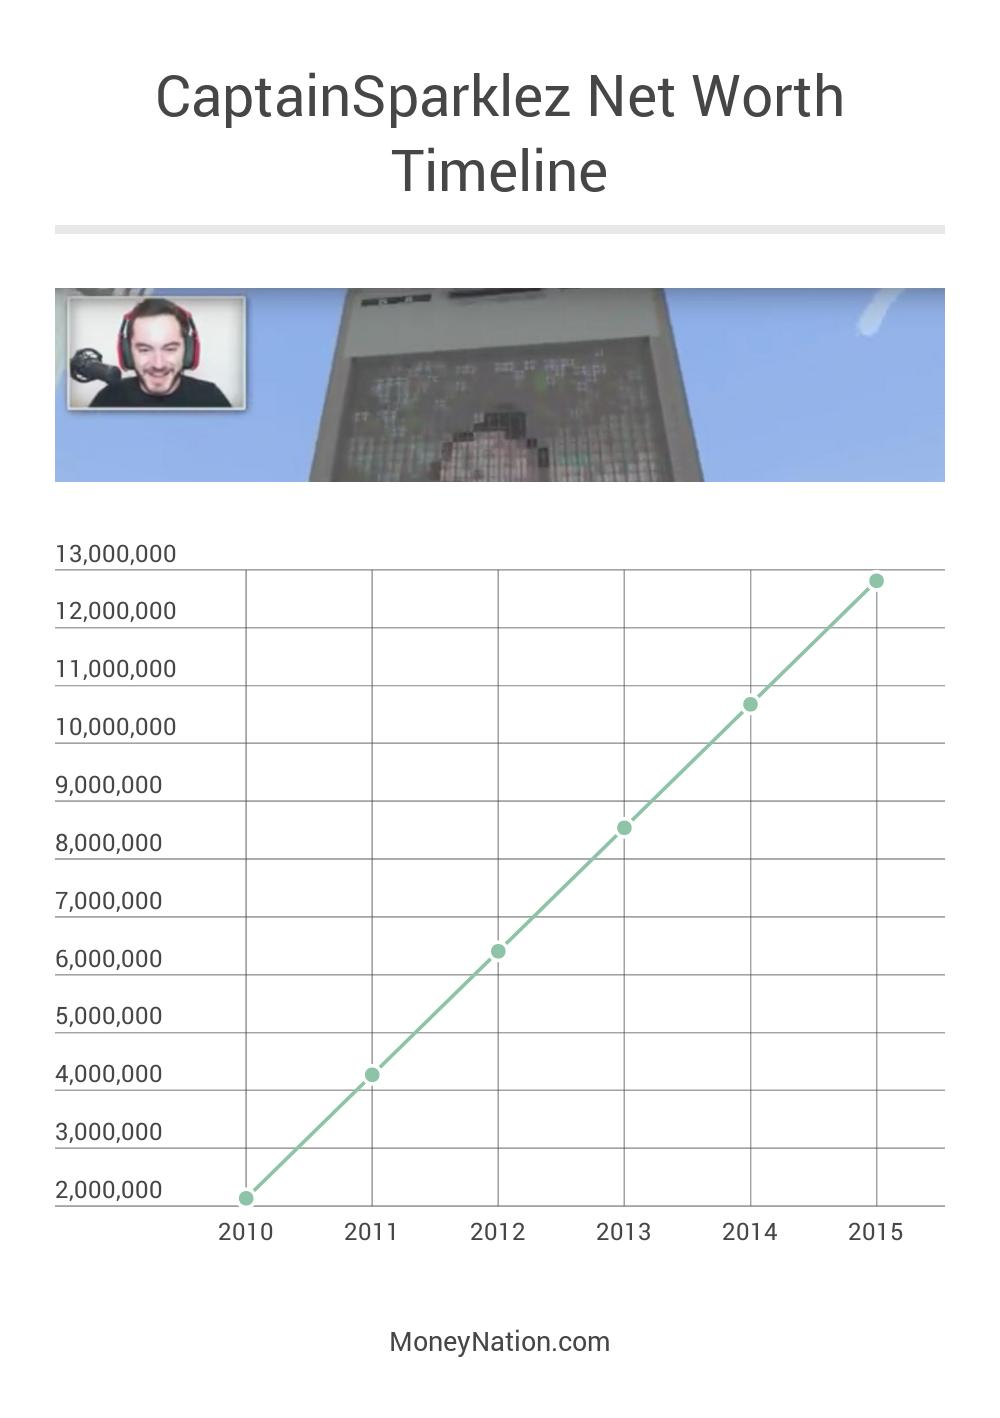 CaptainSparklez Net Worth Timeline